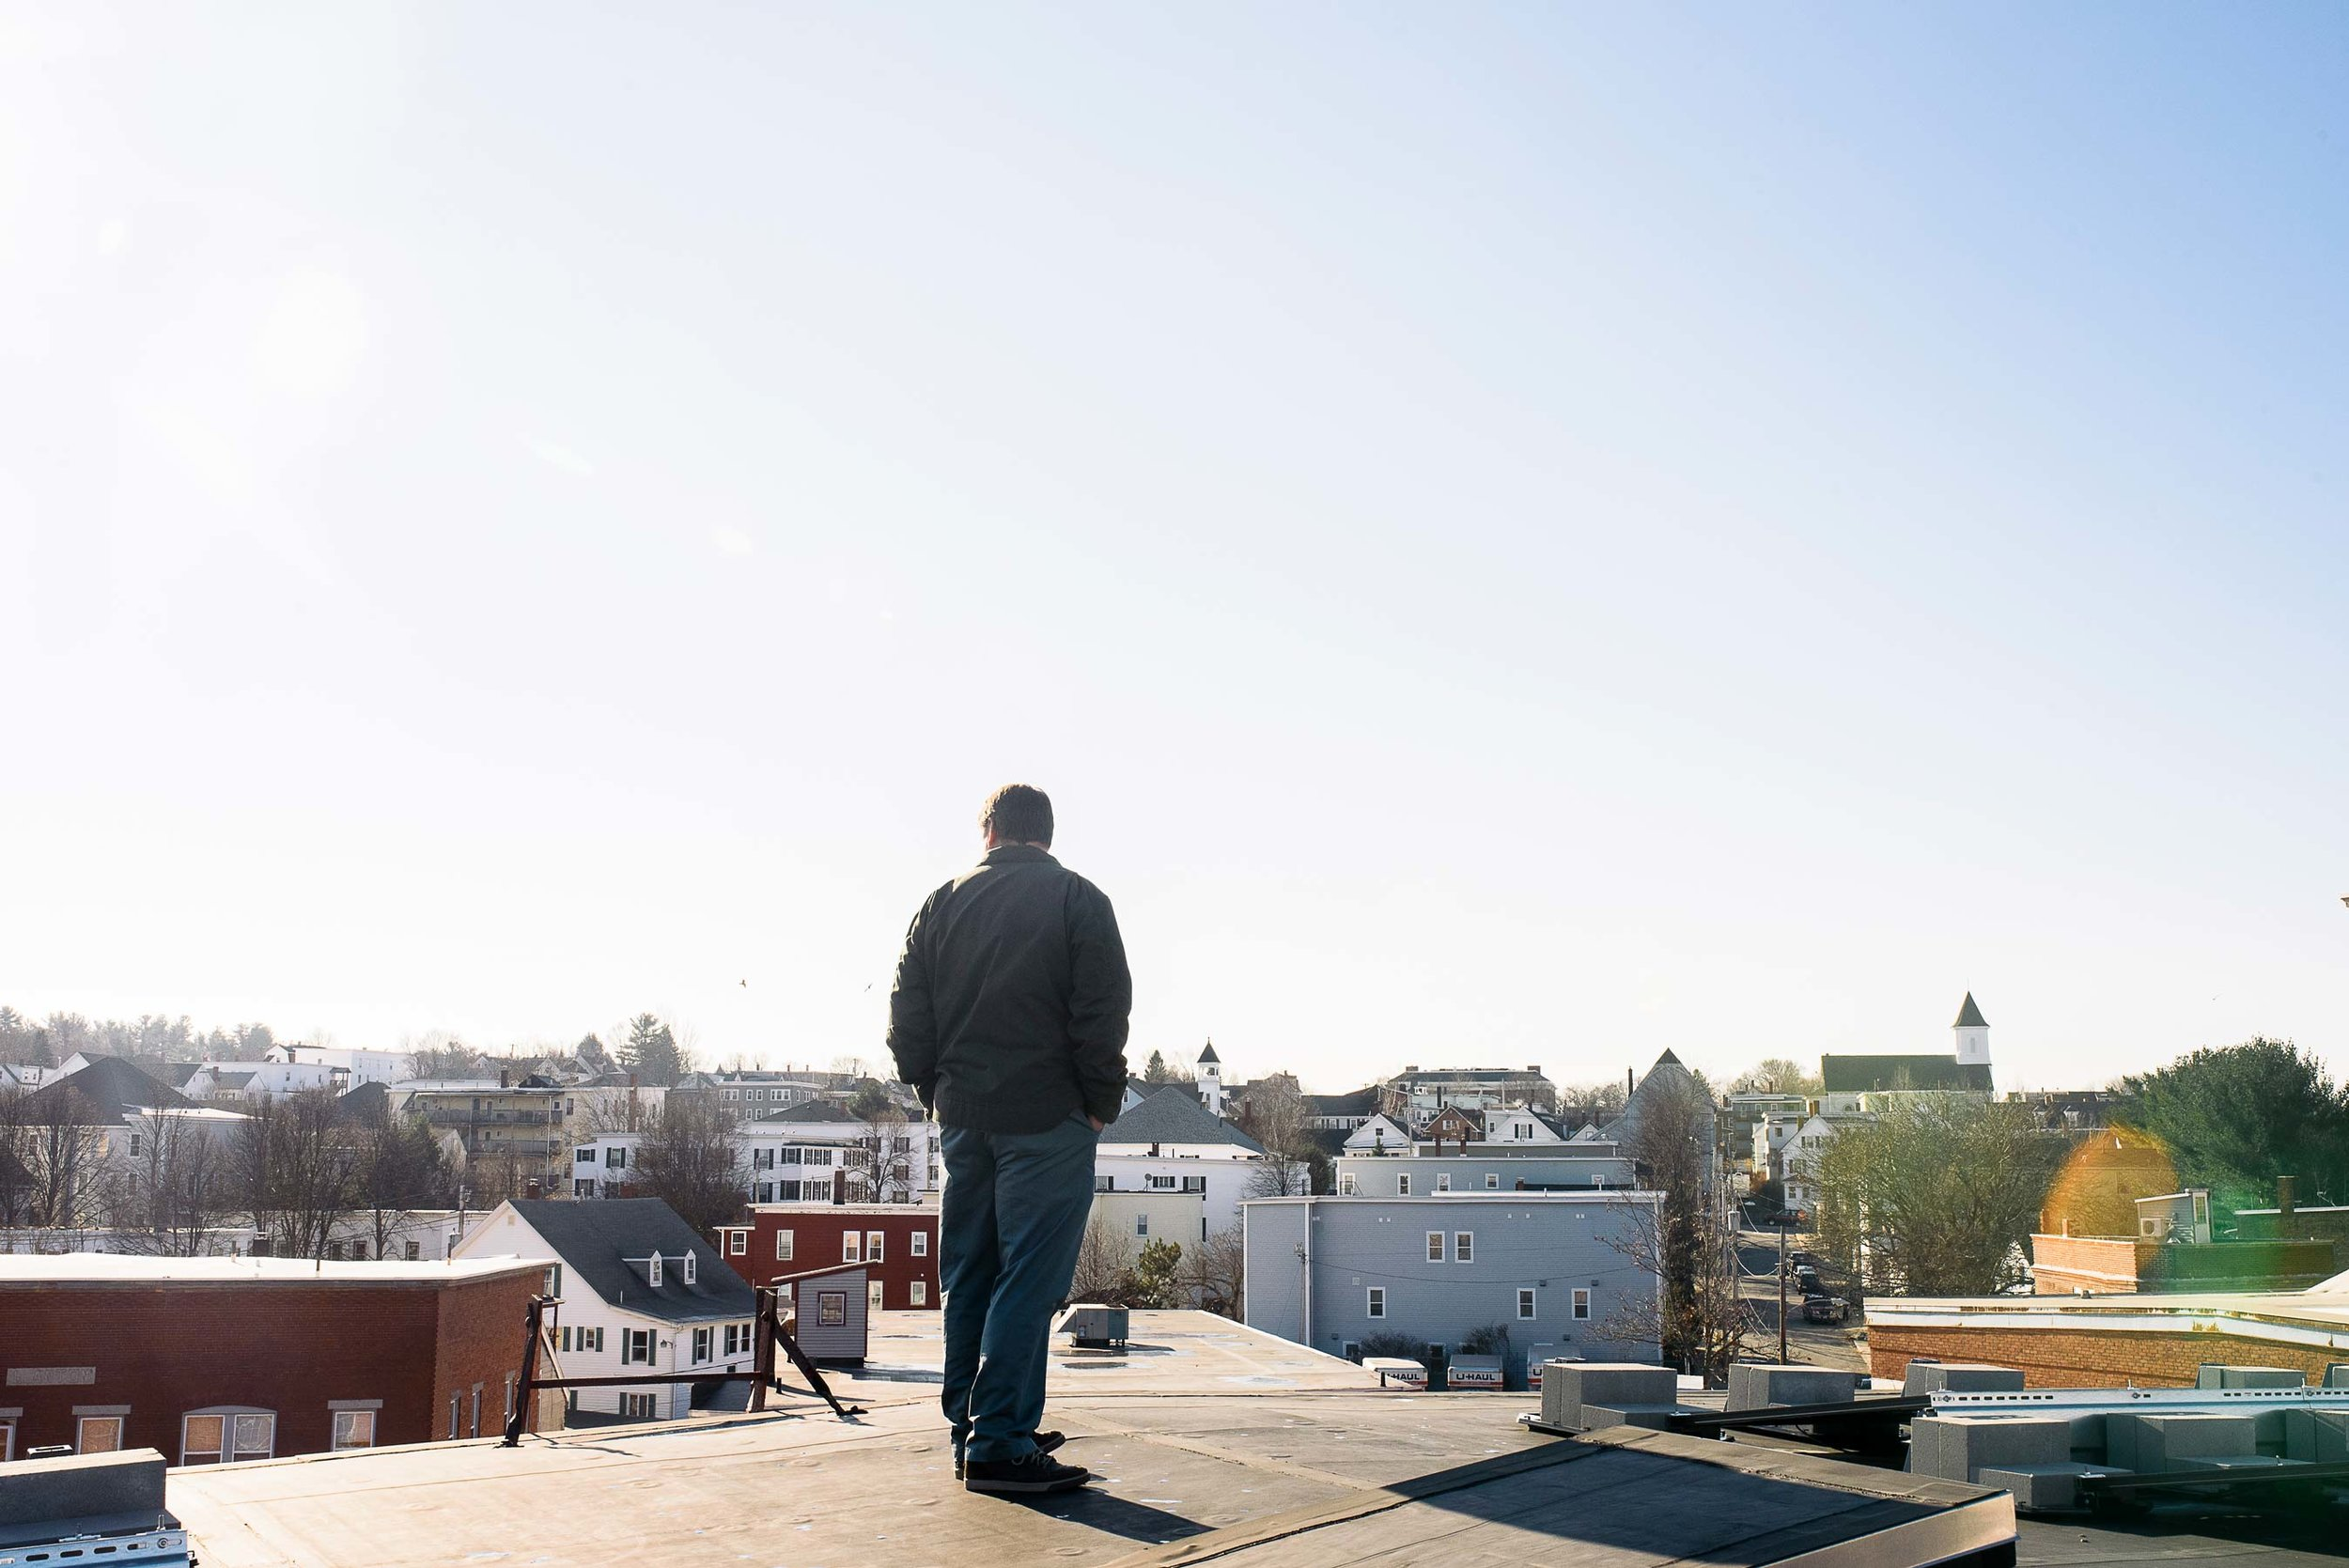 """Scott Joslin surveys downtown Biddeford from the roof of the Pepperell Mill. Says Joslin of the project, """"It's an opportunity to prove that solar energy can work, and we want to showcase it."""""""